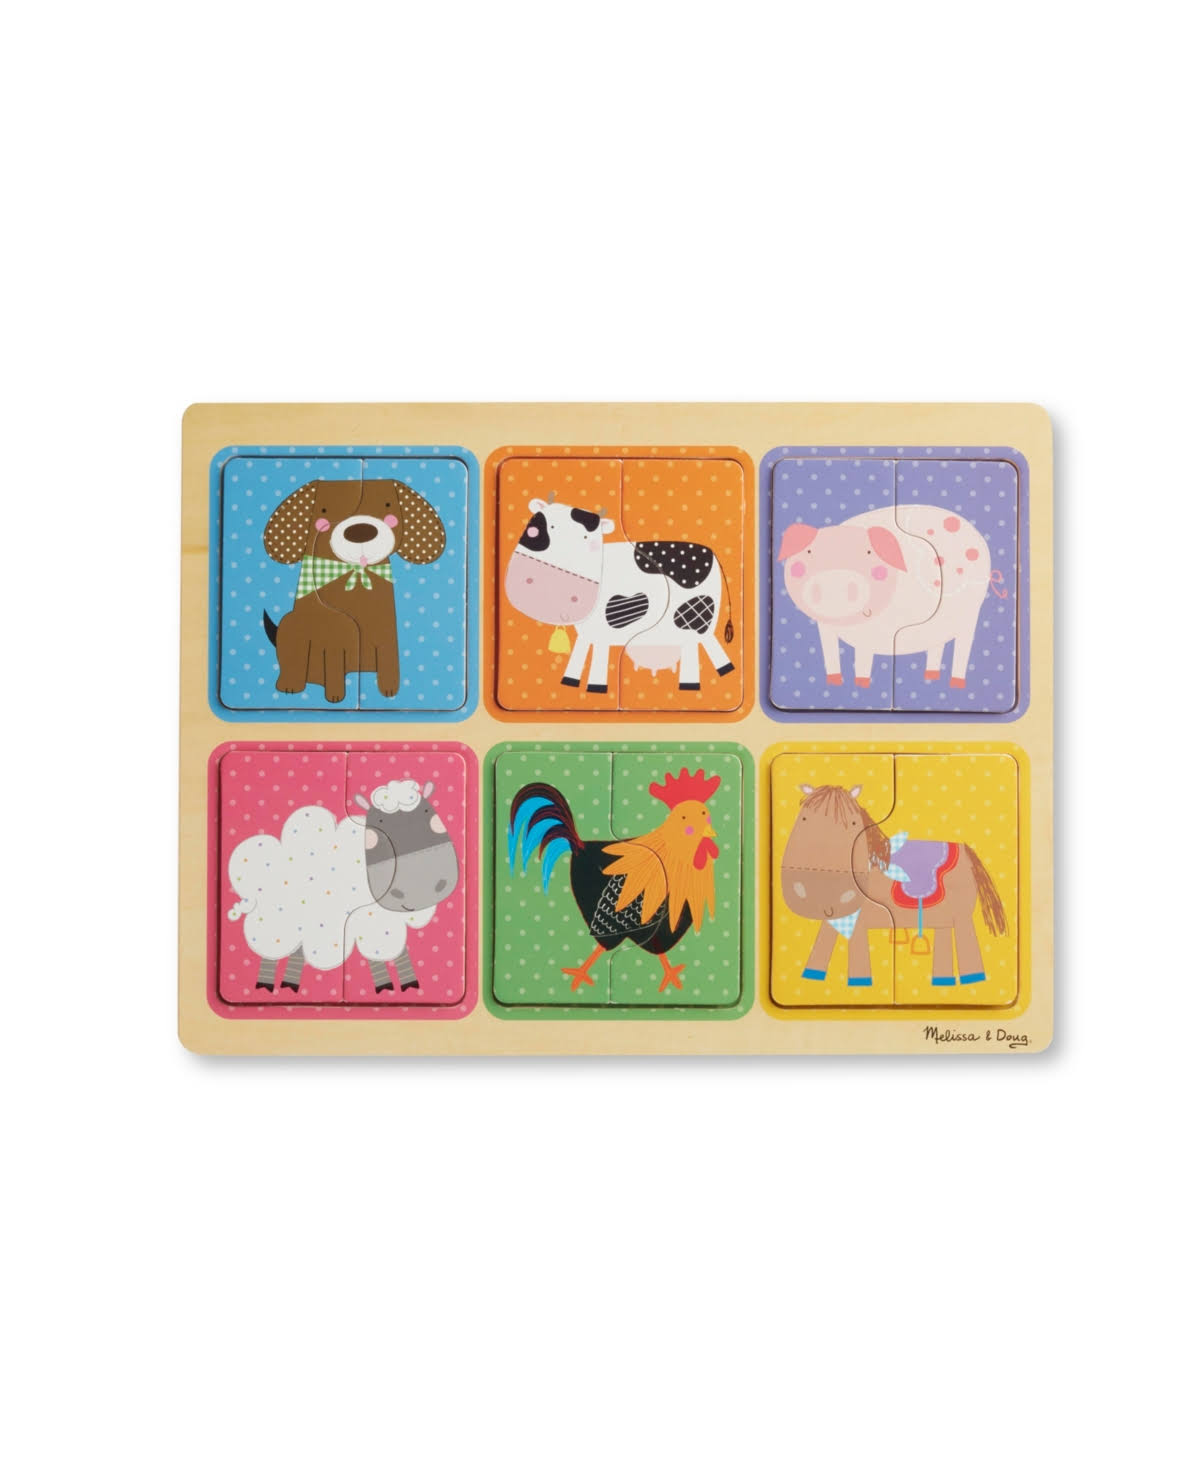 Melissa & Doug Wooden Puzzle: Farm Friends